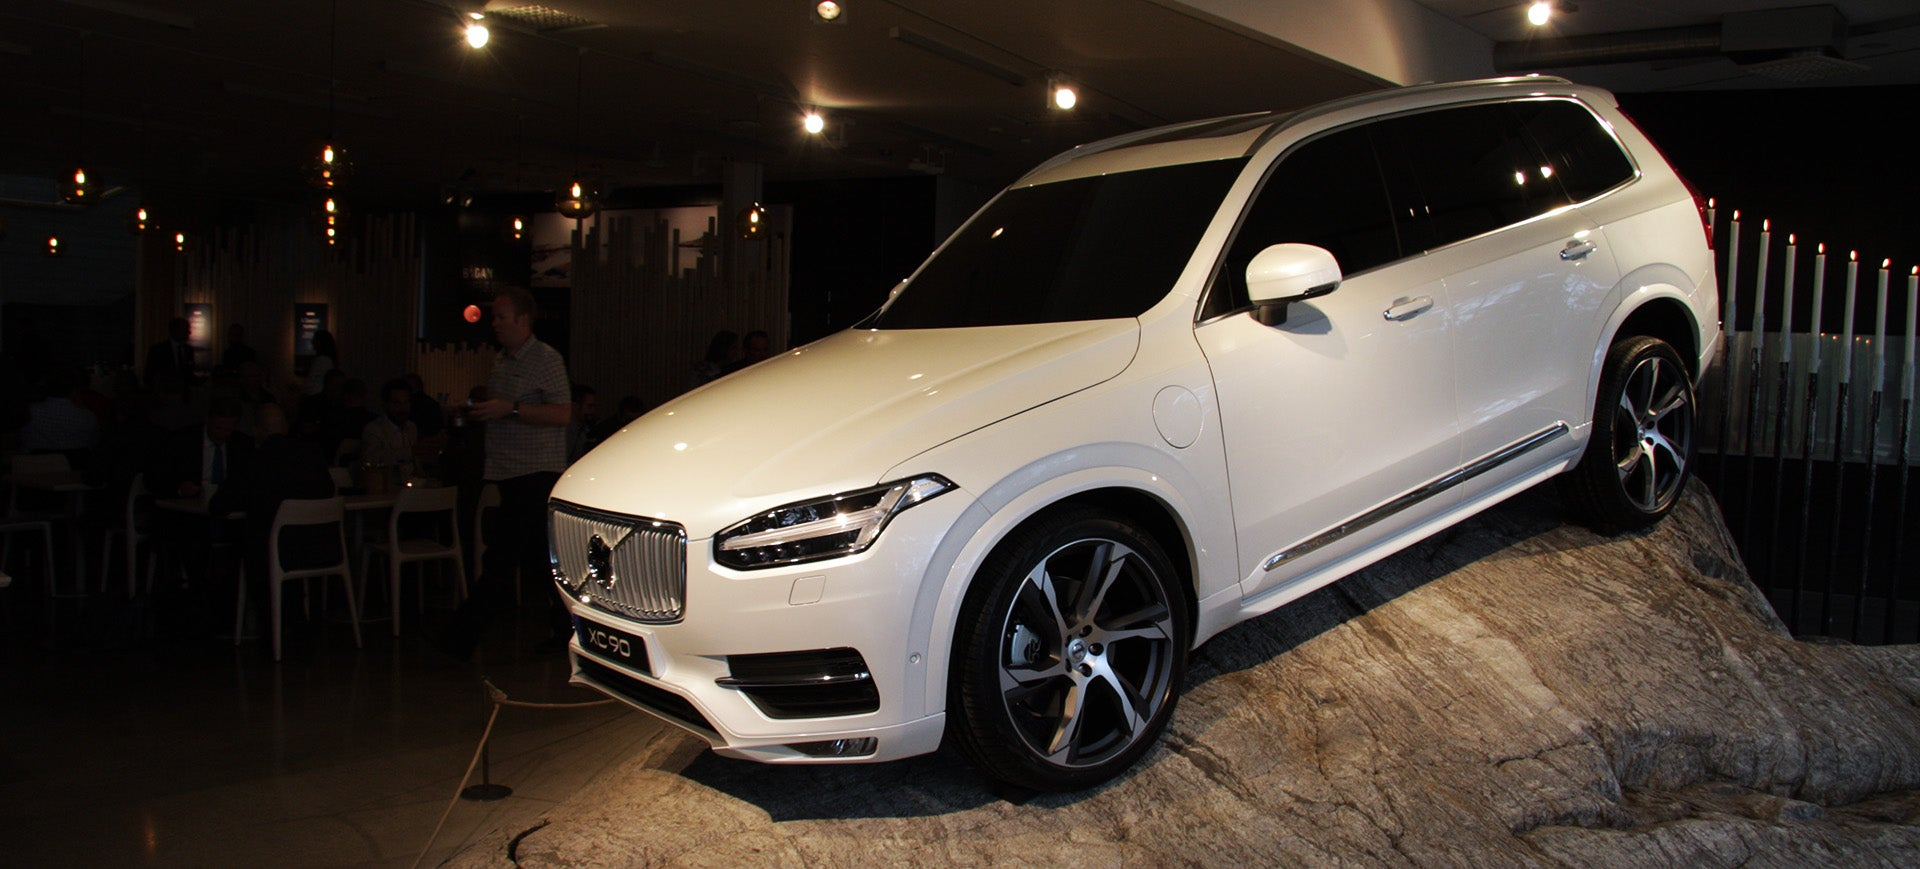 2015 volvo xc90 everything you need to know. Black Bedroom Furniture Sets. Home Design Ideas